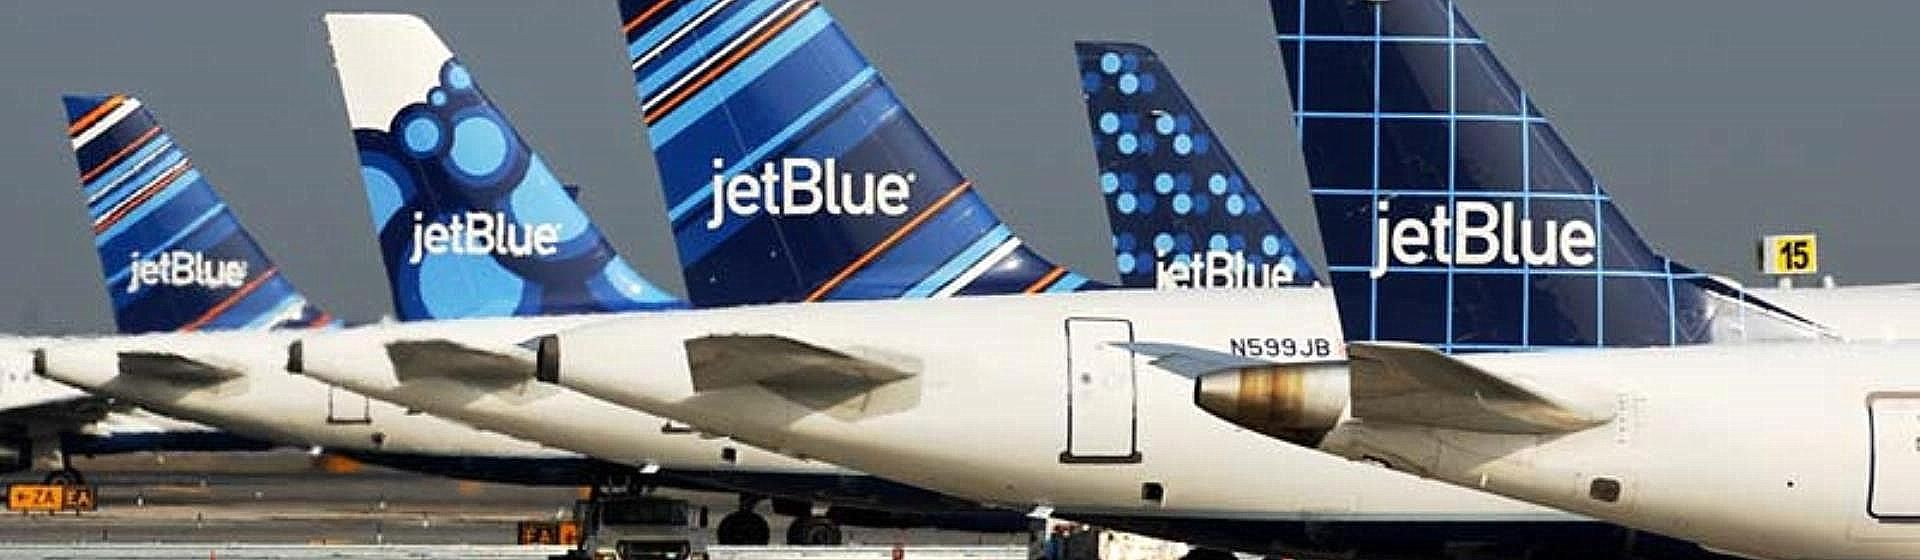 JetBlue Spring Deals from 49 oneway